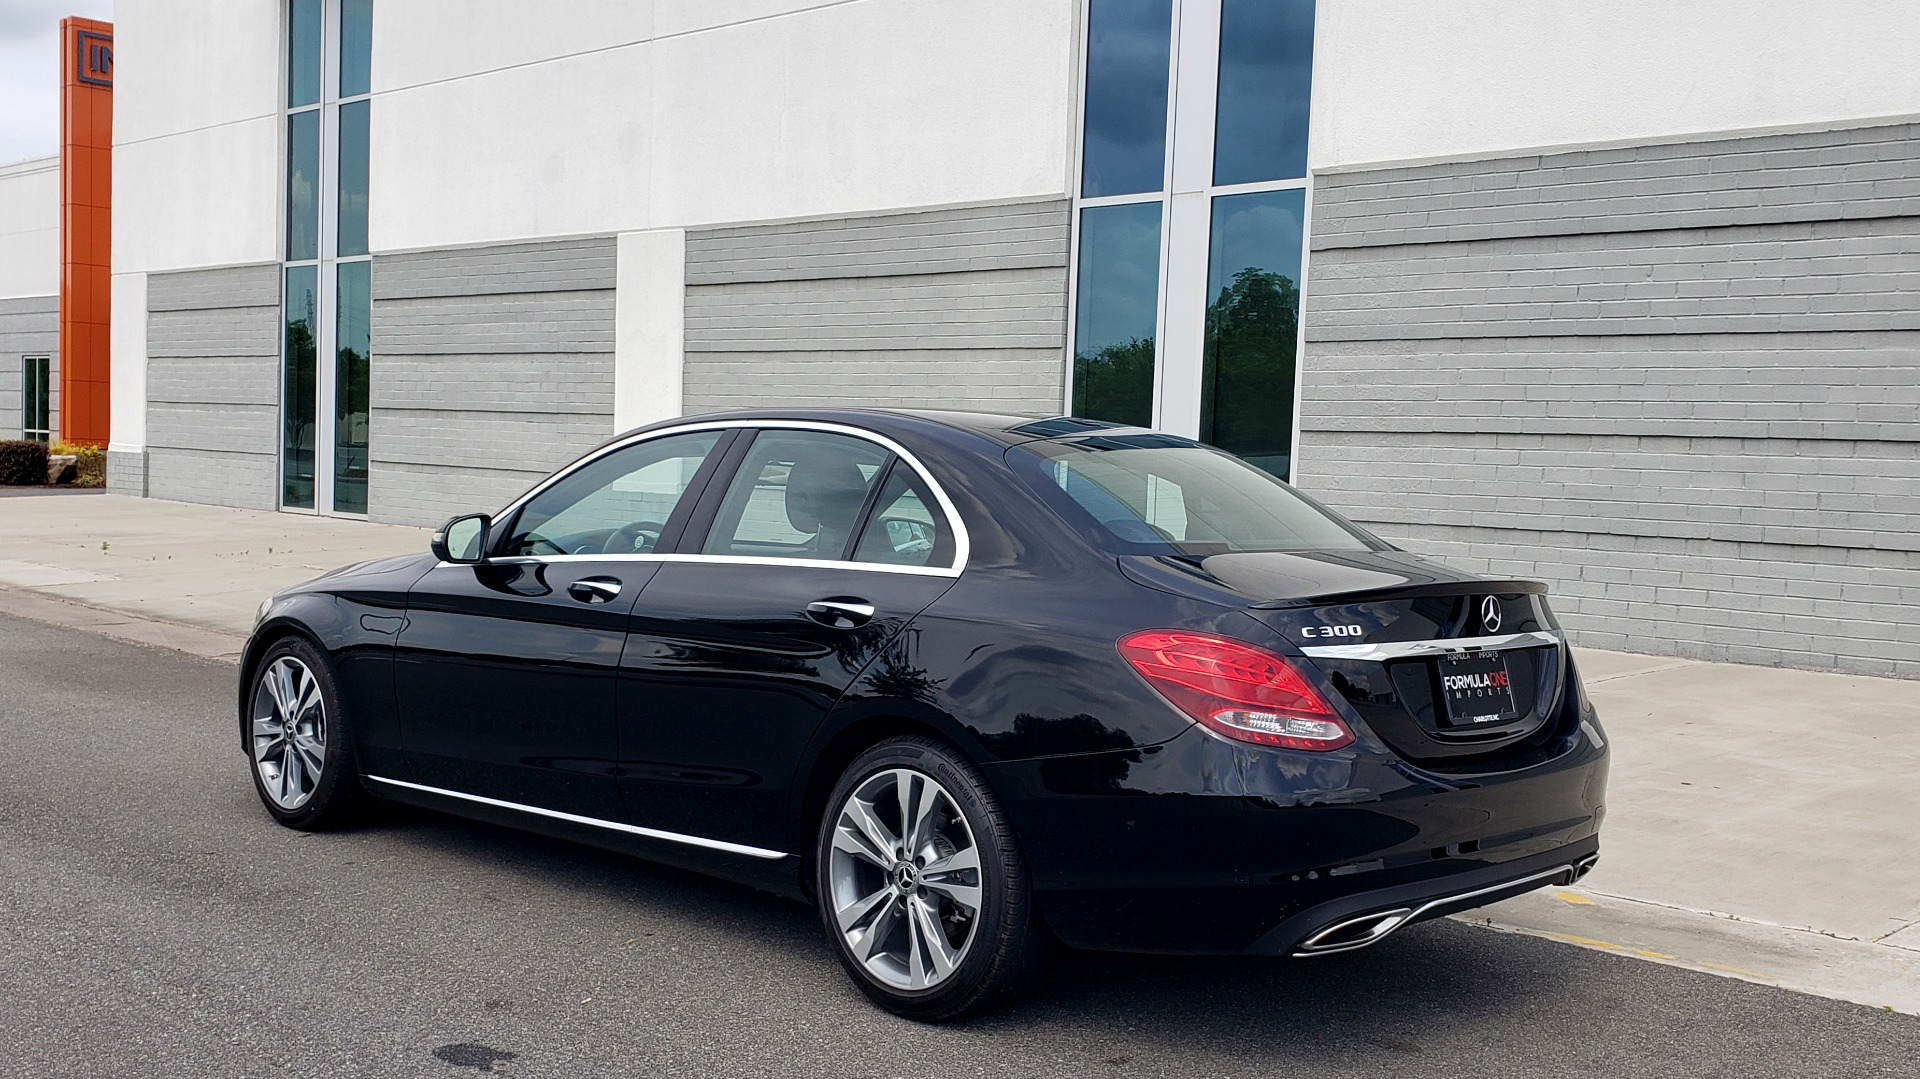 Used 2018 Mercedes-Benz C-CLASS C 300 PREMIUM / HTD STS / APPLE CARPLAY / 18IN WHEELS / REARVIEW for sale $24,795 at Formula Imports in Charlotte NC 28227 6